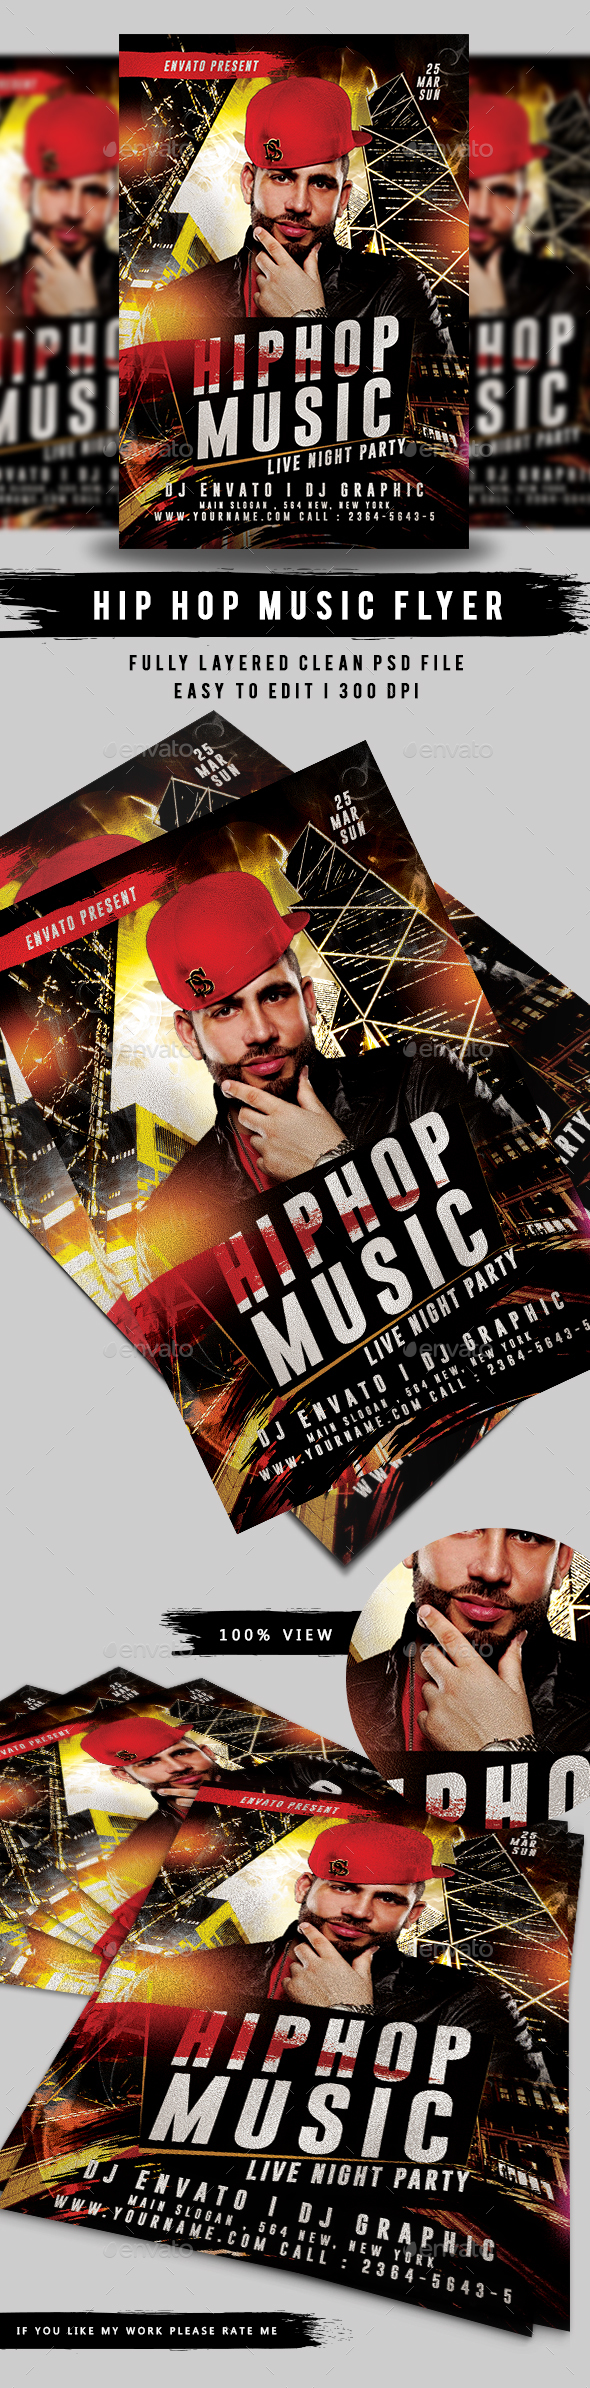 Hip Hop Event Music Flyer - Events Flyers